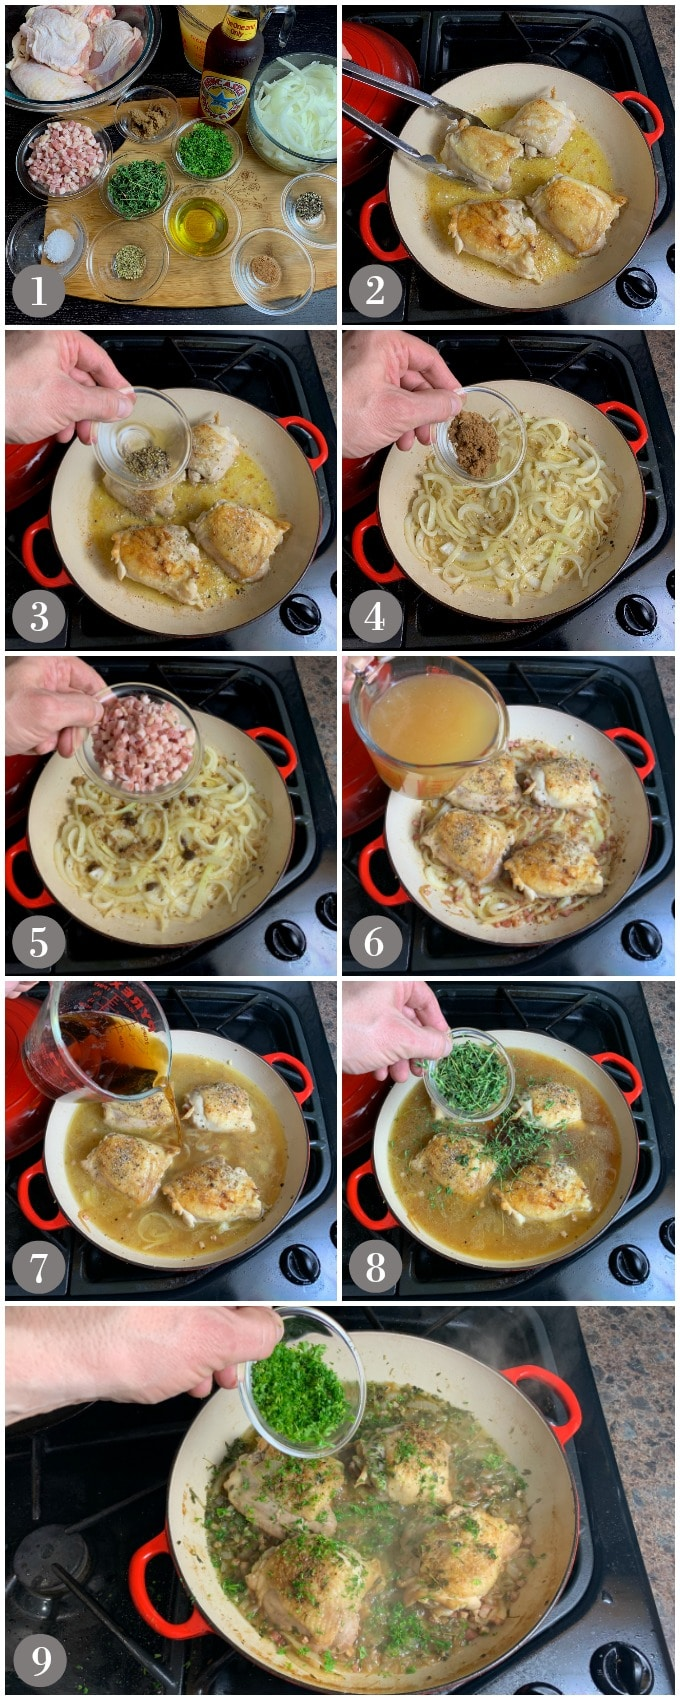 A collage of photos showing step to make beer braised chicken in a red pan on a stove top.